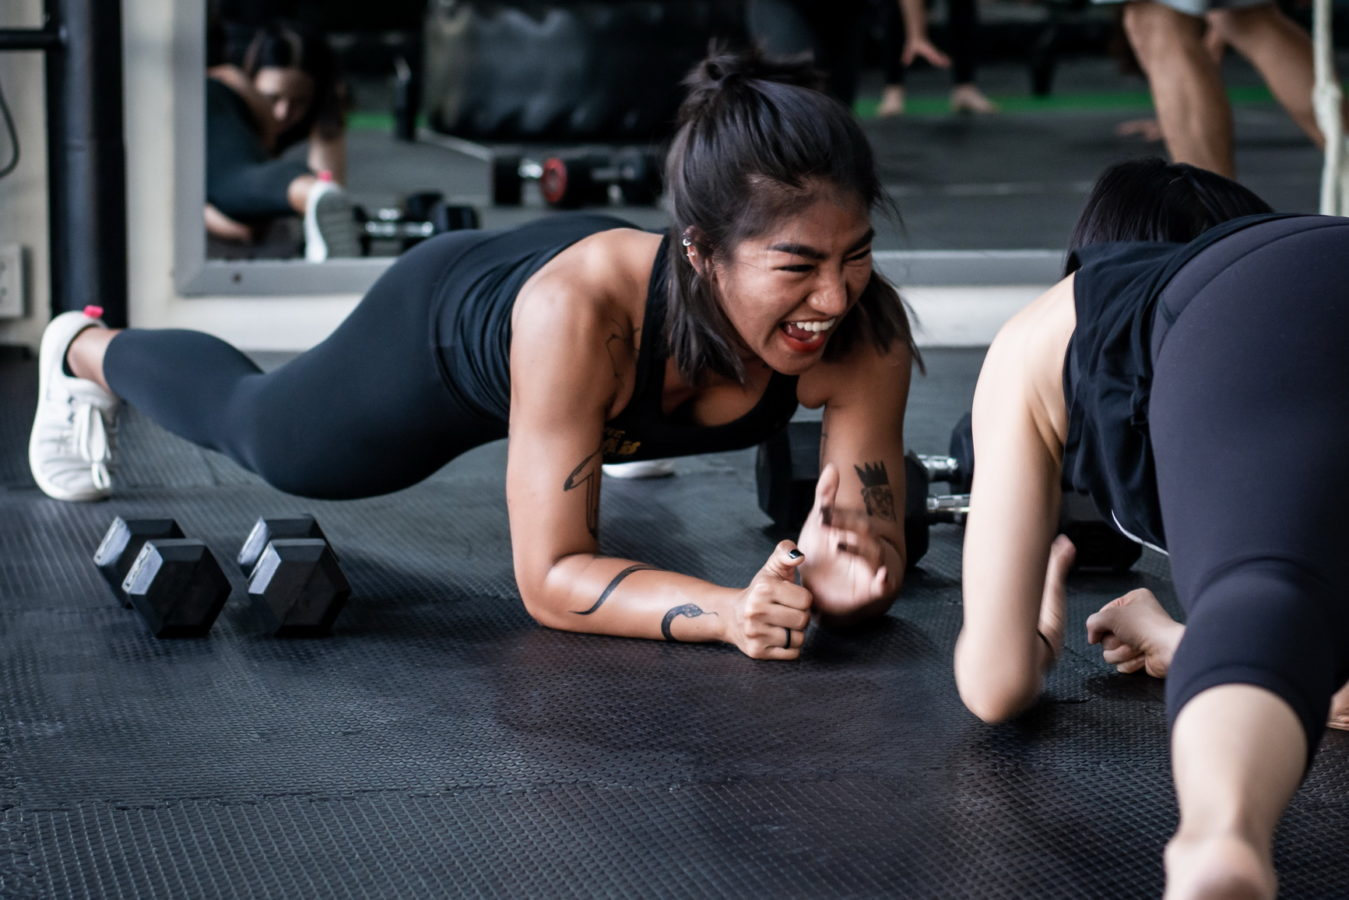 The LAB boutique gym reopens with some interesting initiatives